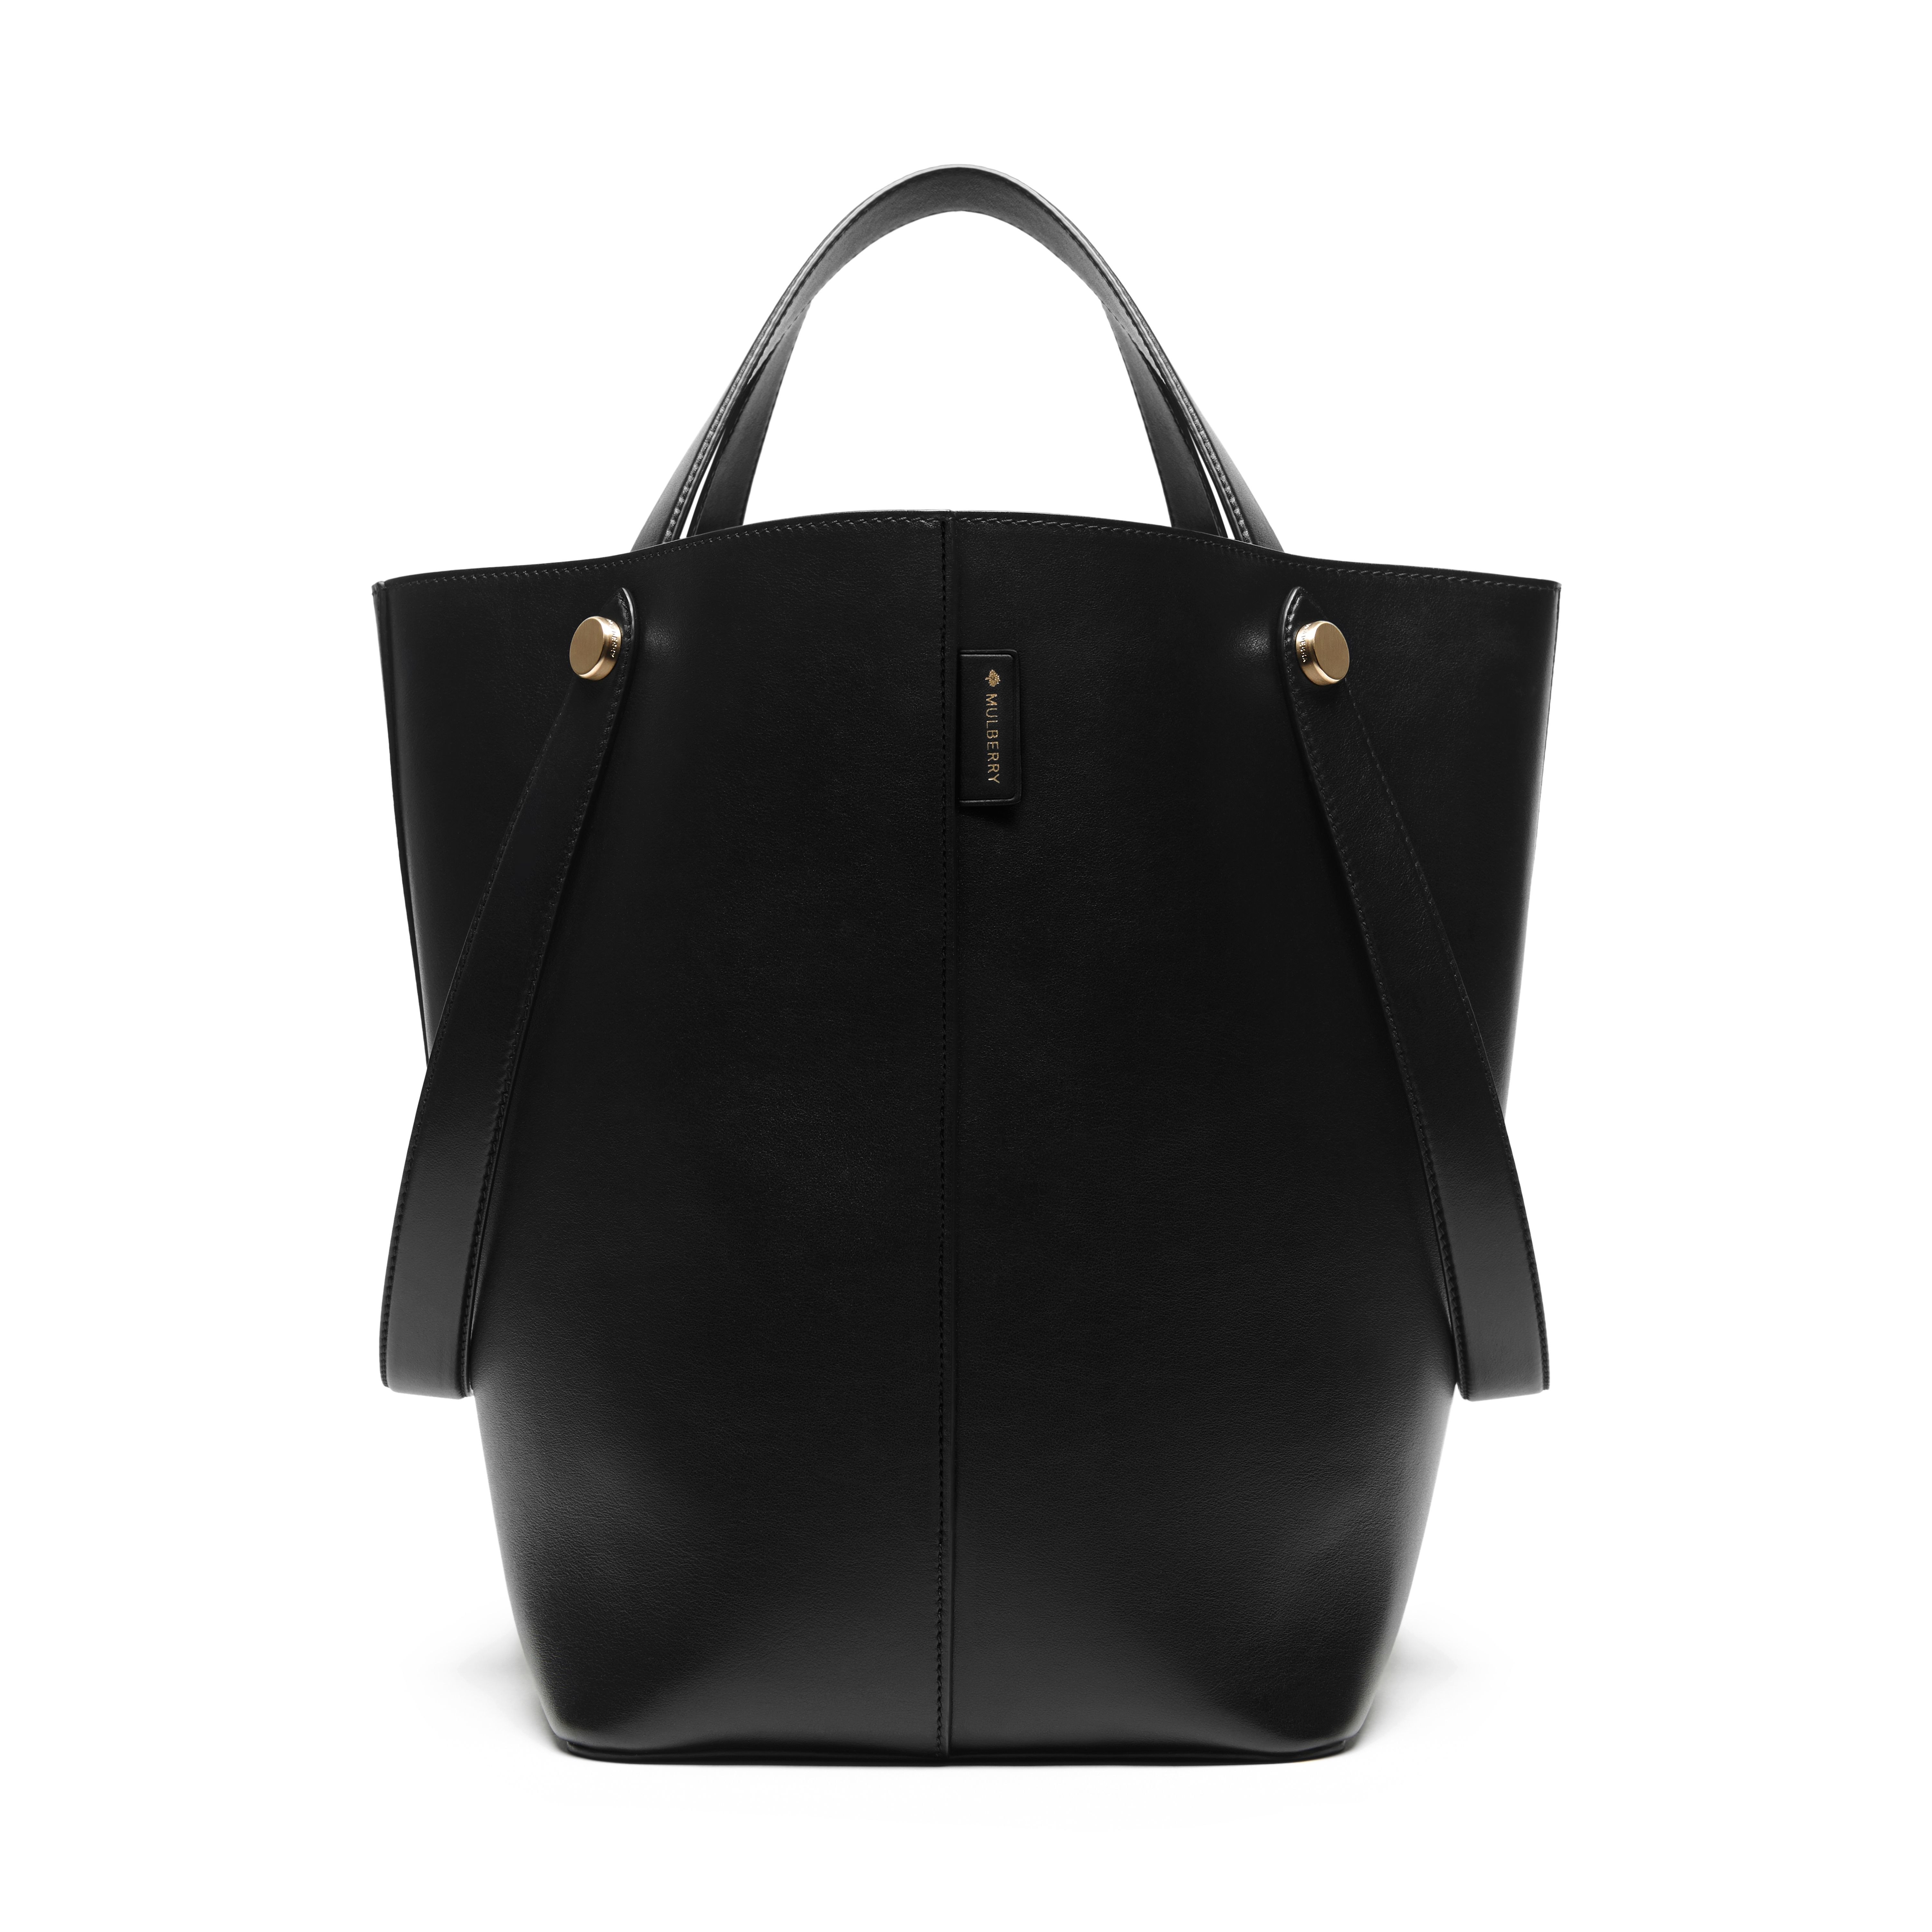 Lyst - Mulberry Kite Leather Tote in Black 1686b3c3d0fea